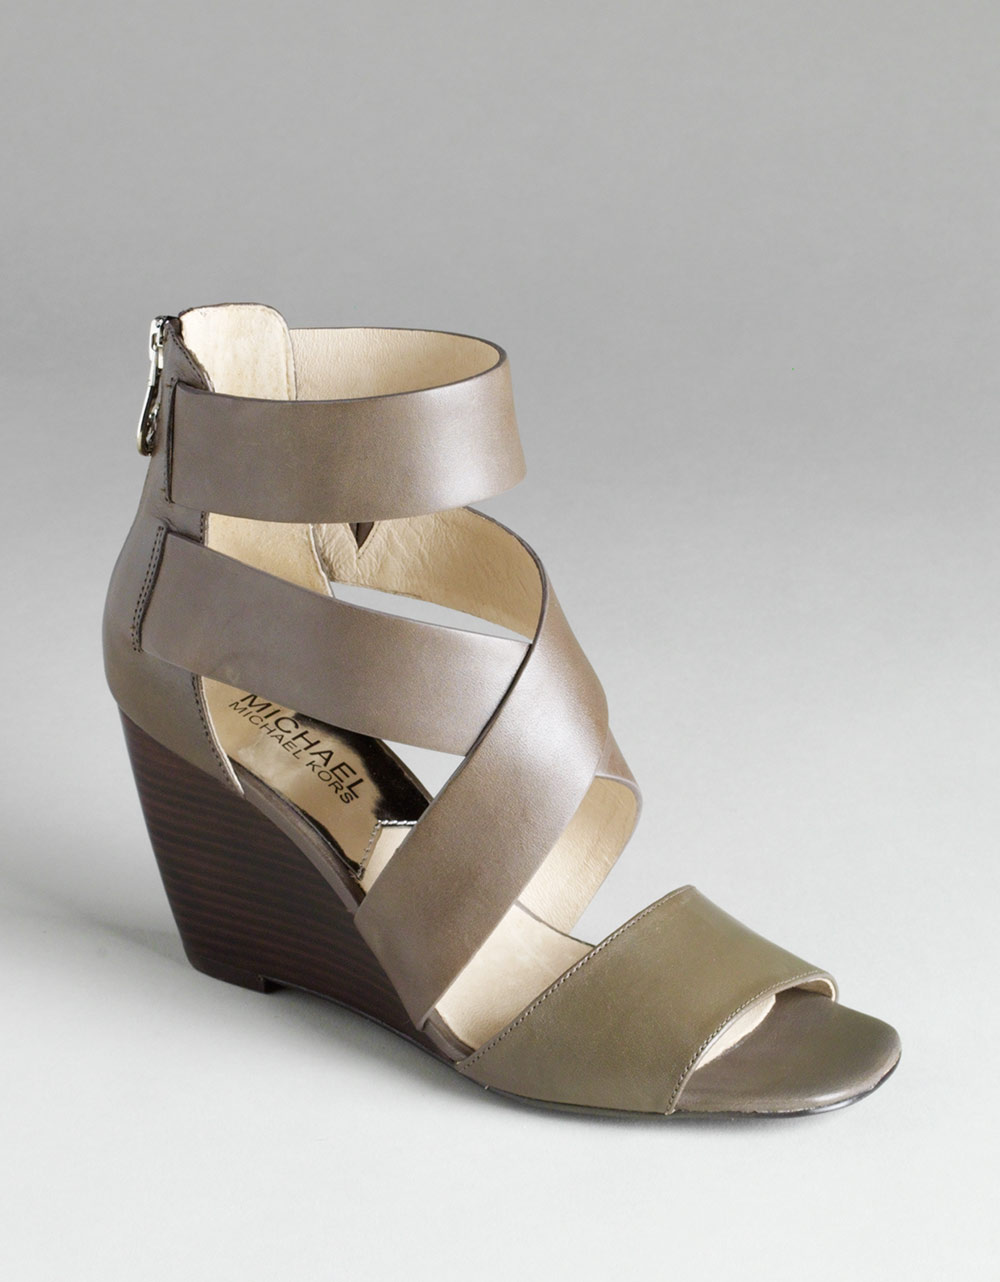 michael by michael kors wedge sandals in gray grey